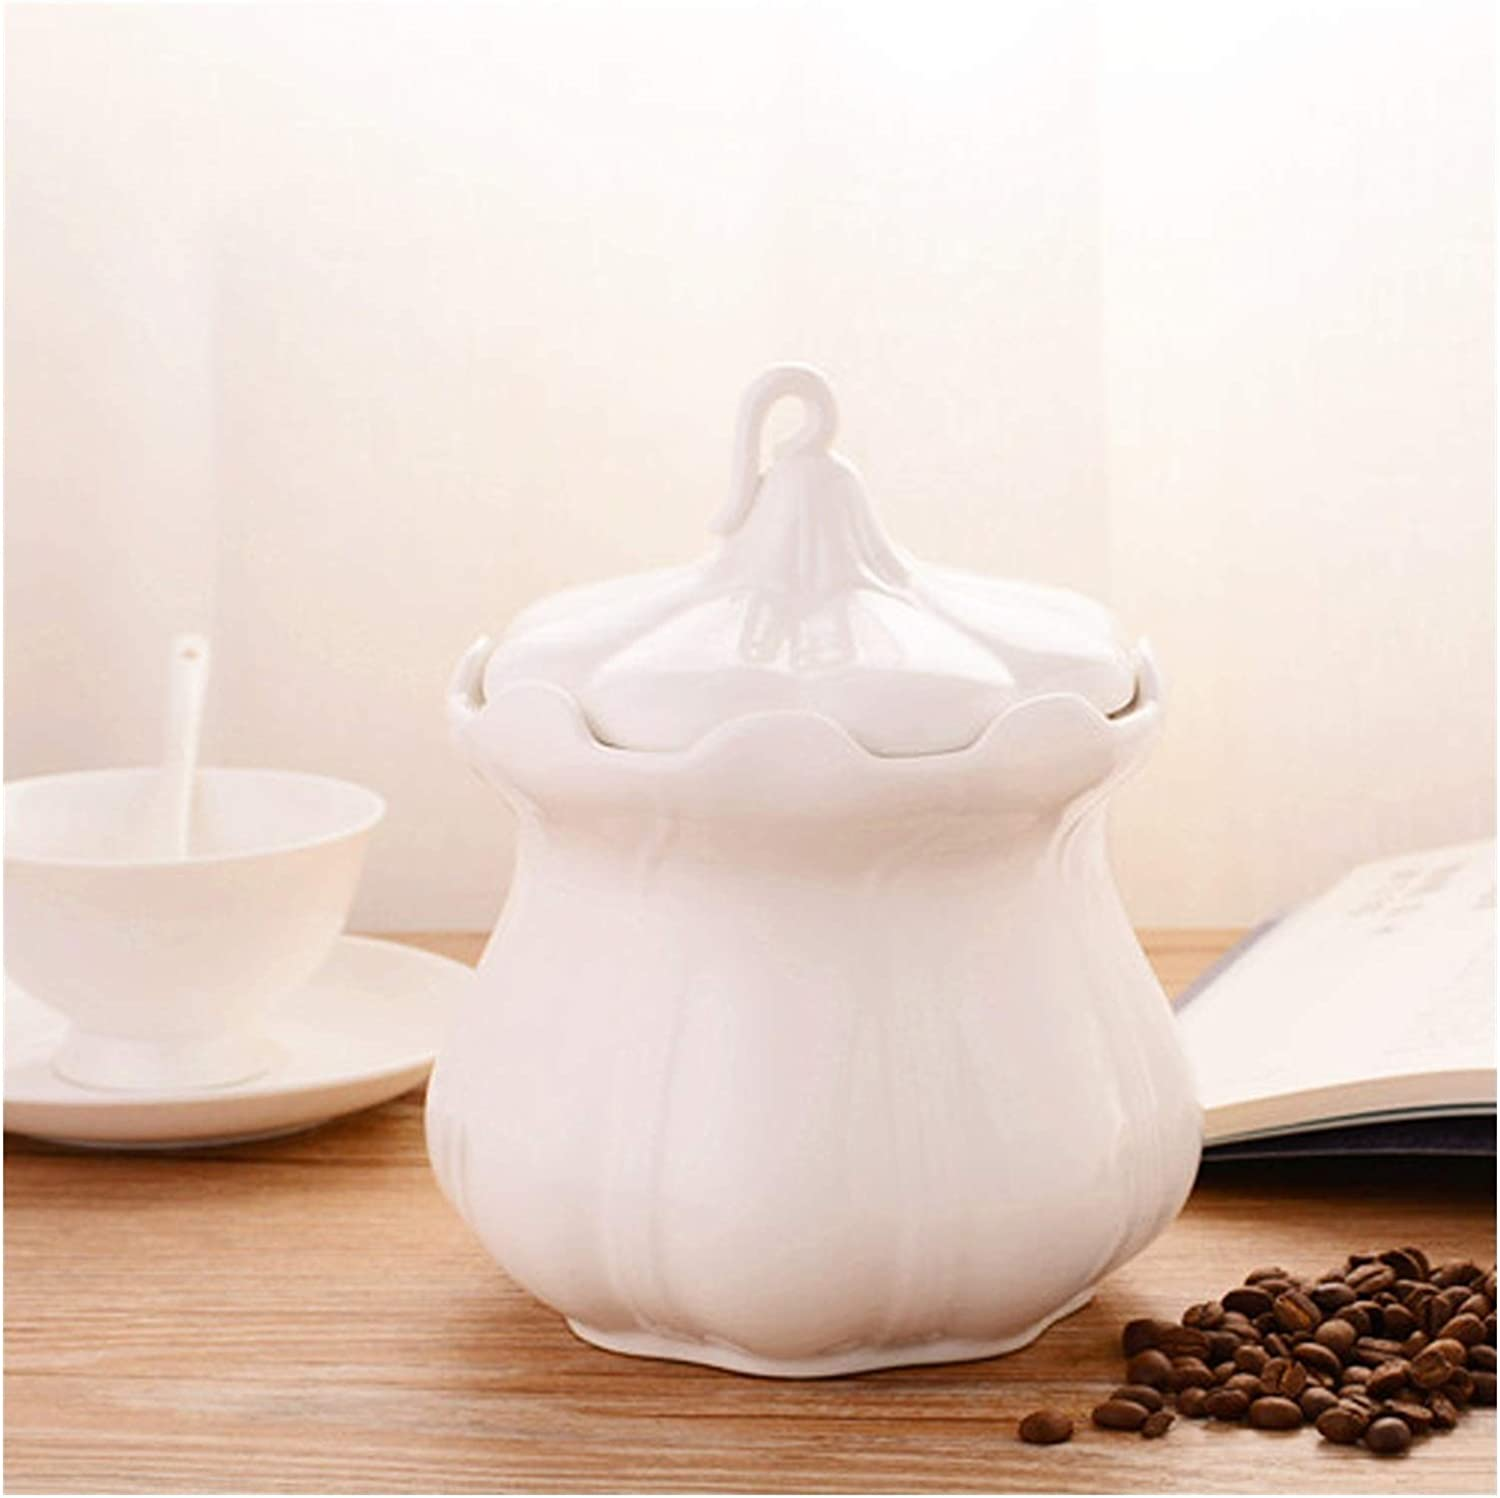 Spice jar Ceramic Sugar Bowl Recommended Very popular Large Cans Coffee Bean Sealed